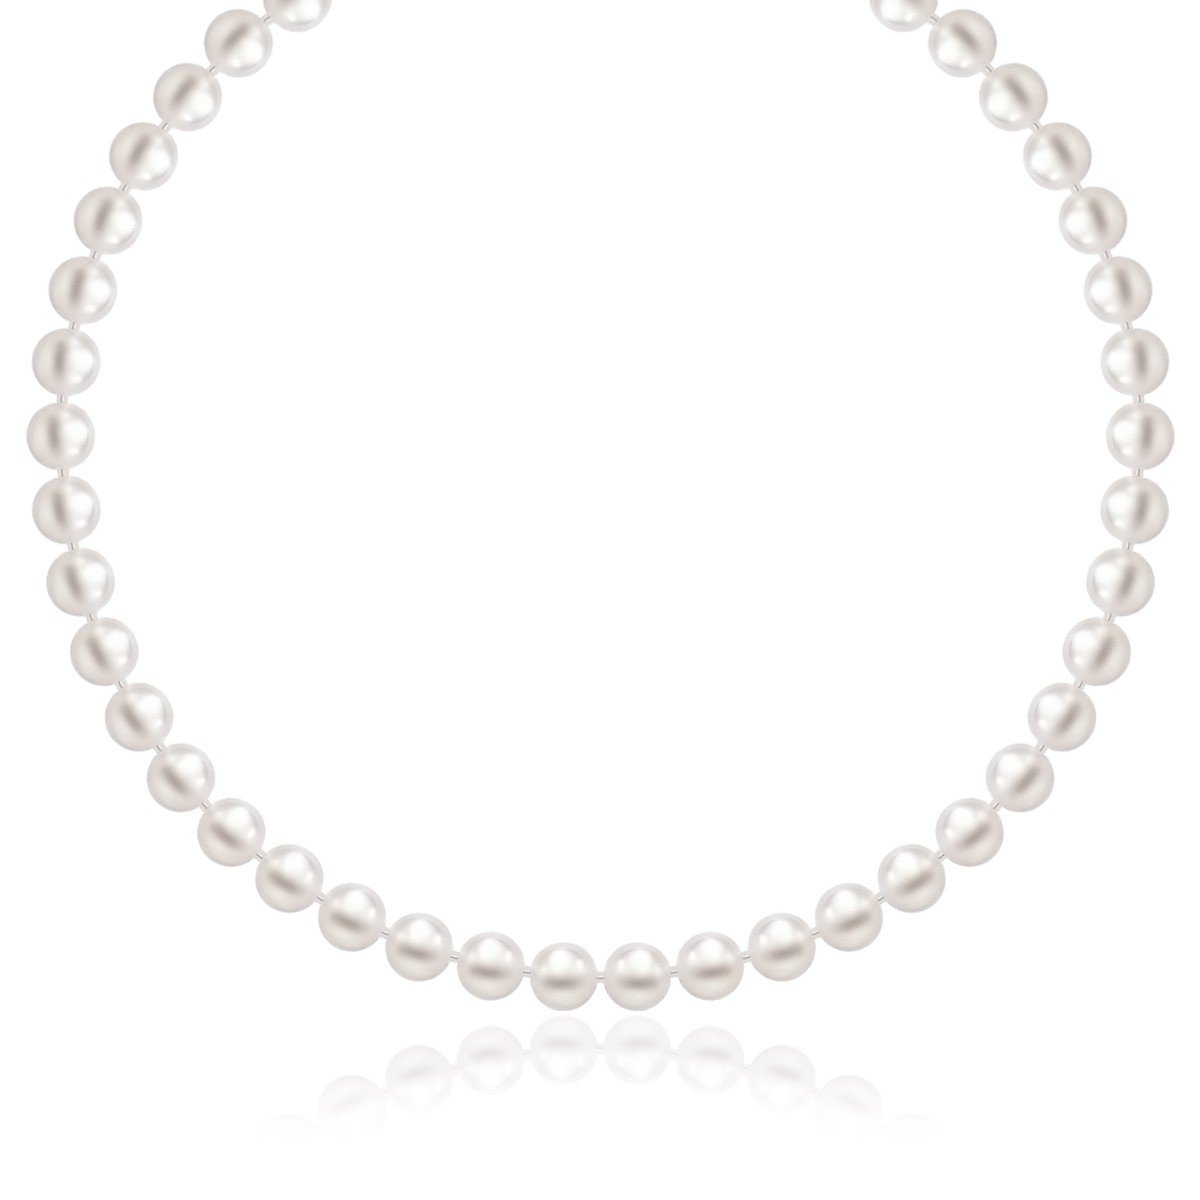 14K White Gold Necklace with White Freshwater Cultured Pearls (6.0mm to 6.5mm)